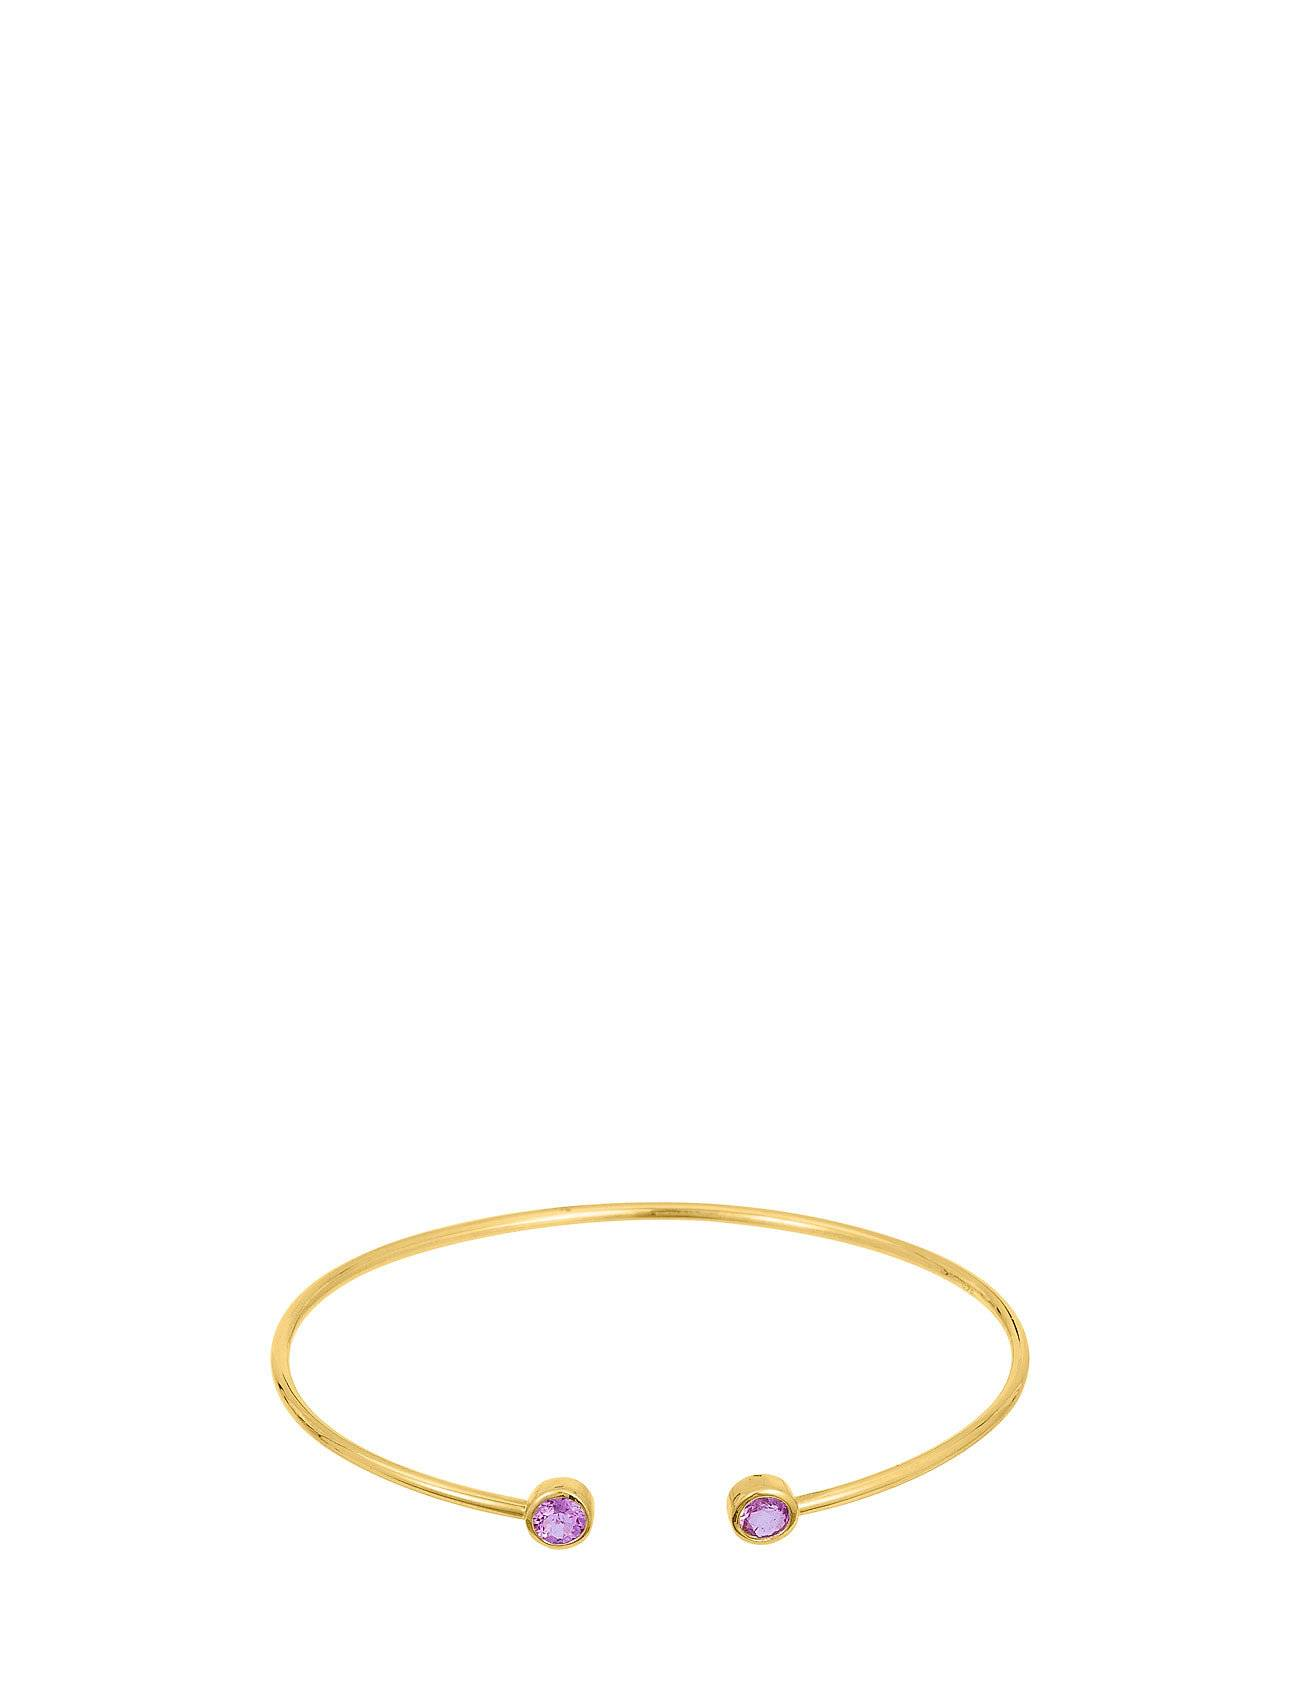 SOPHIE by SOPHIE Mini Two Stone Cuff